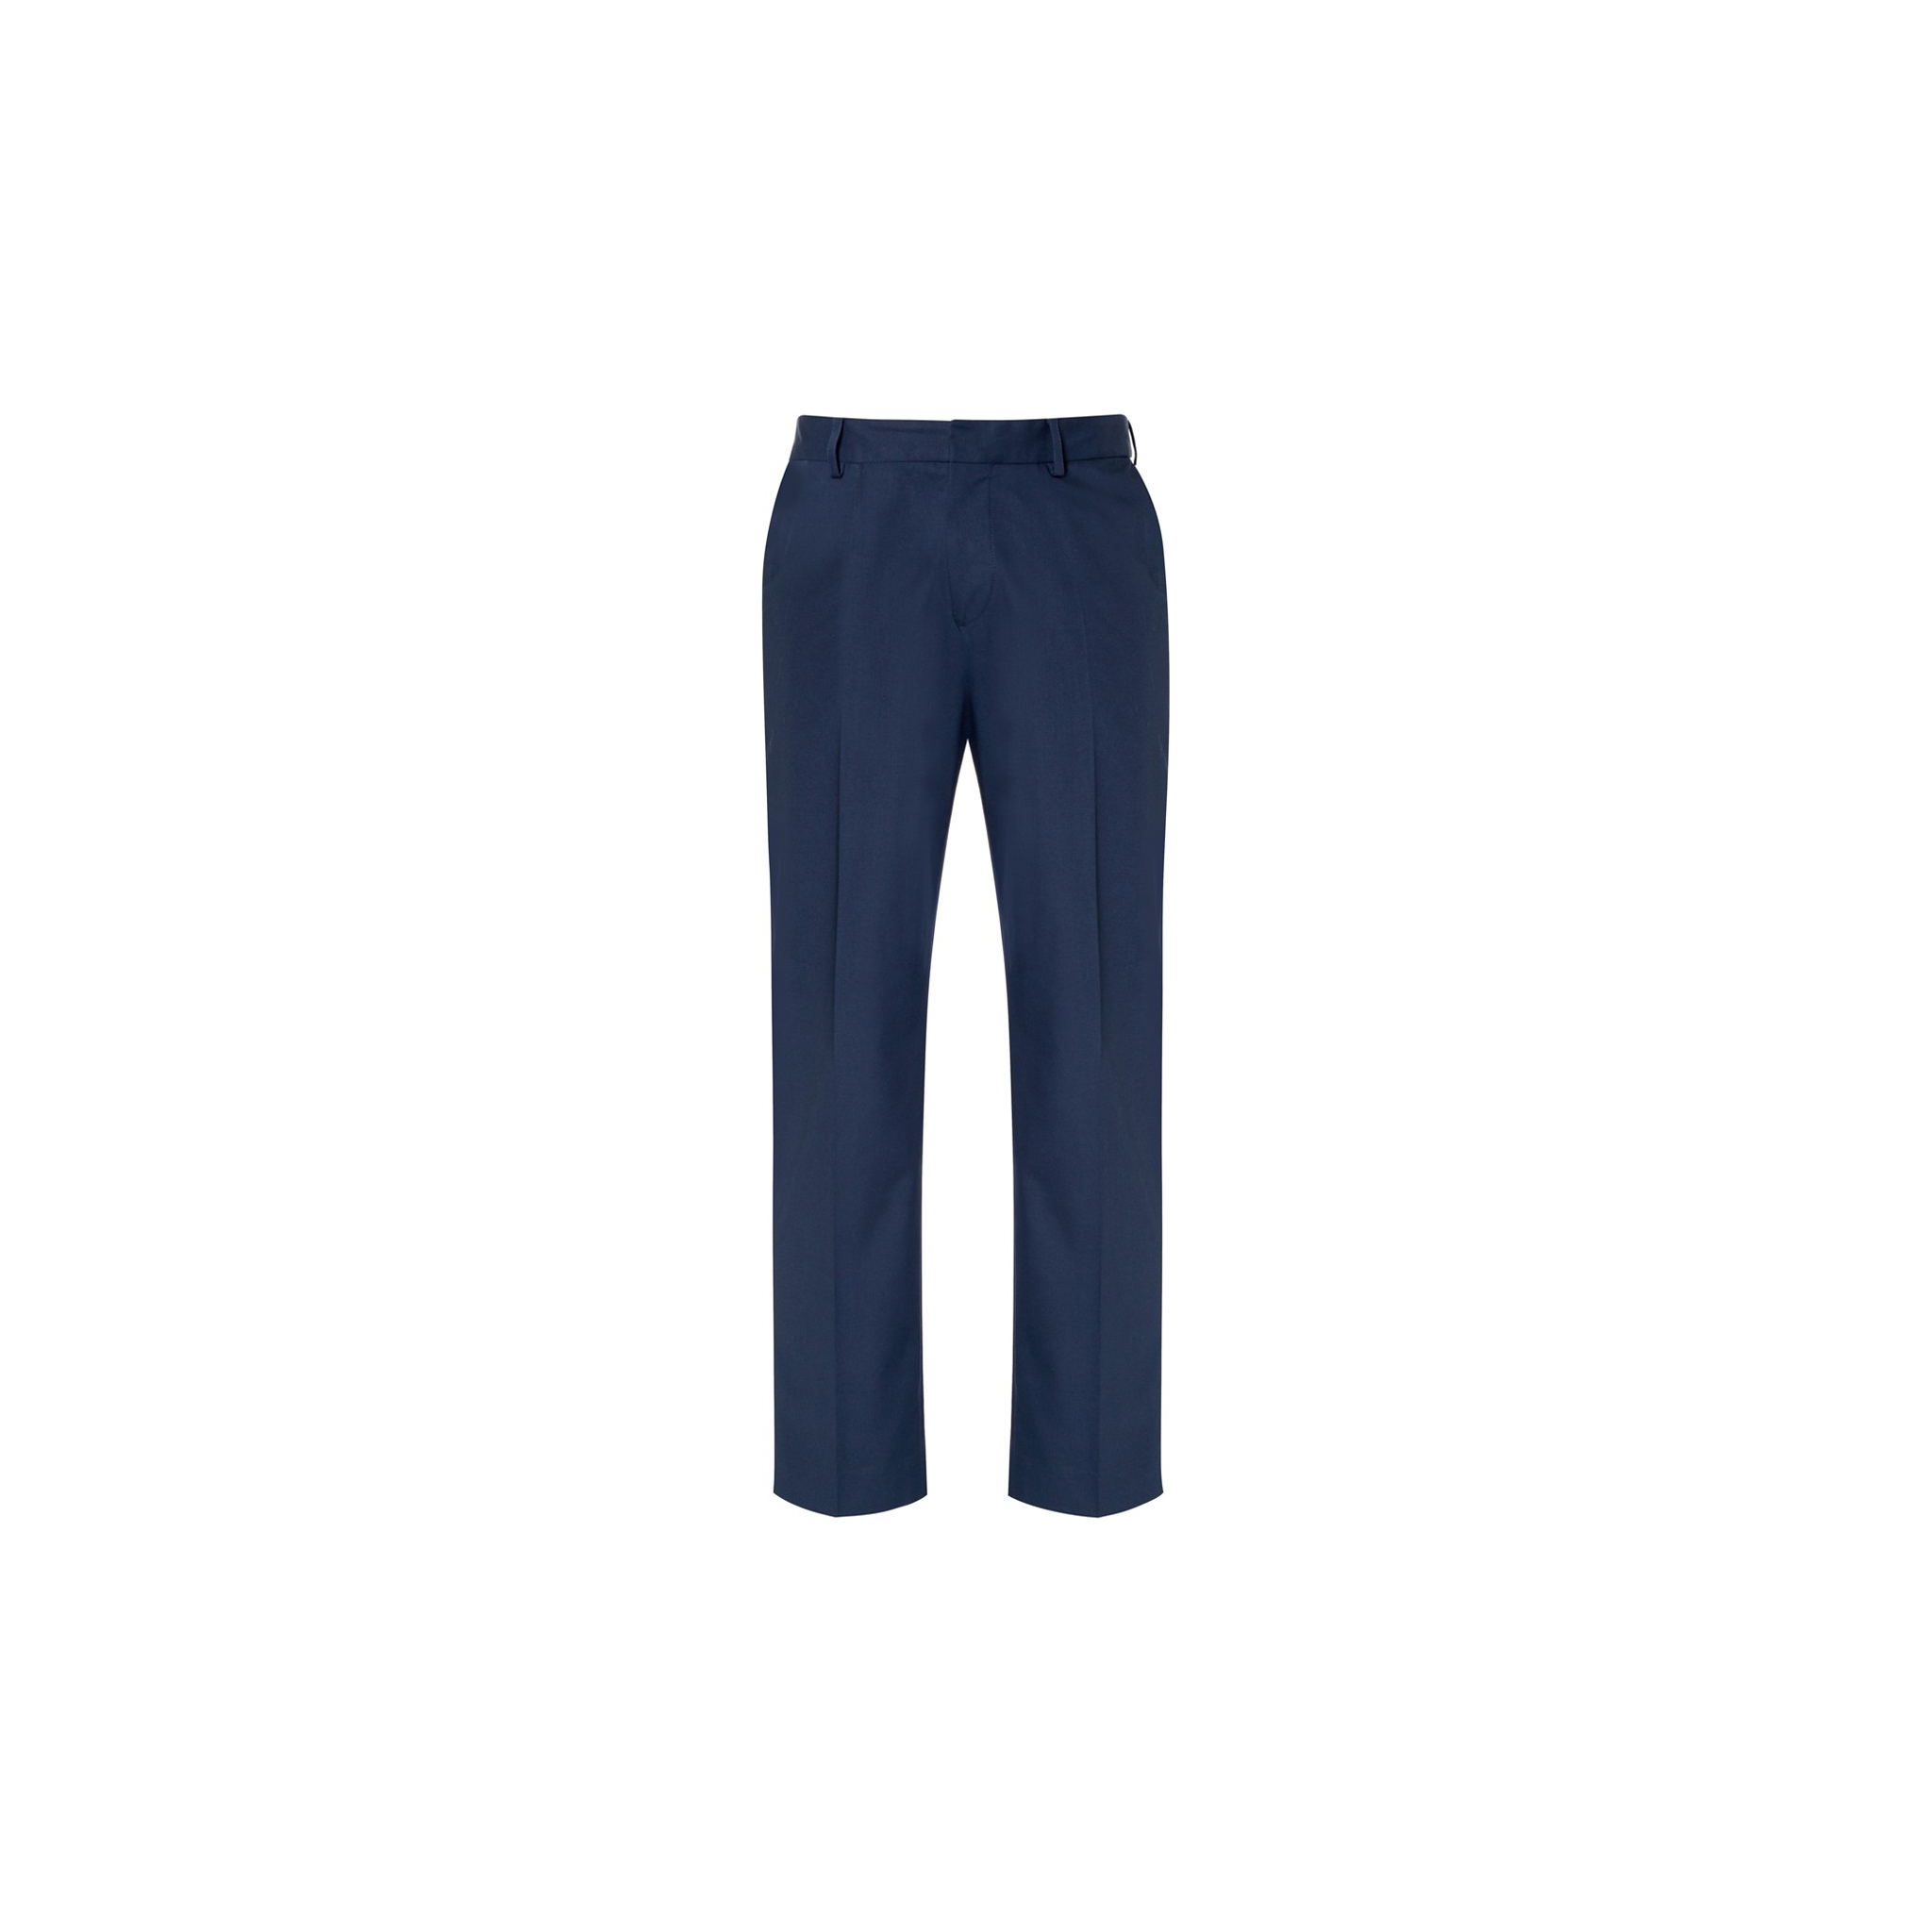 china-boys-suit-trousers_fr-270x355